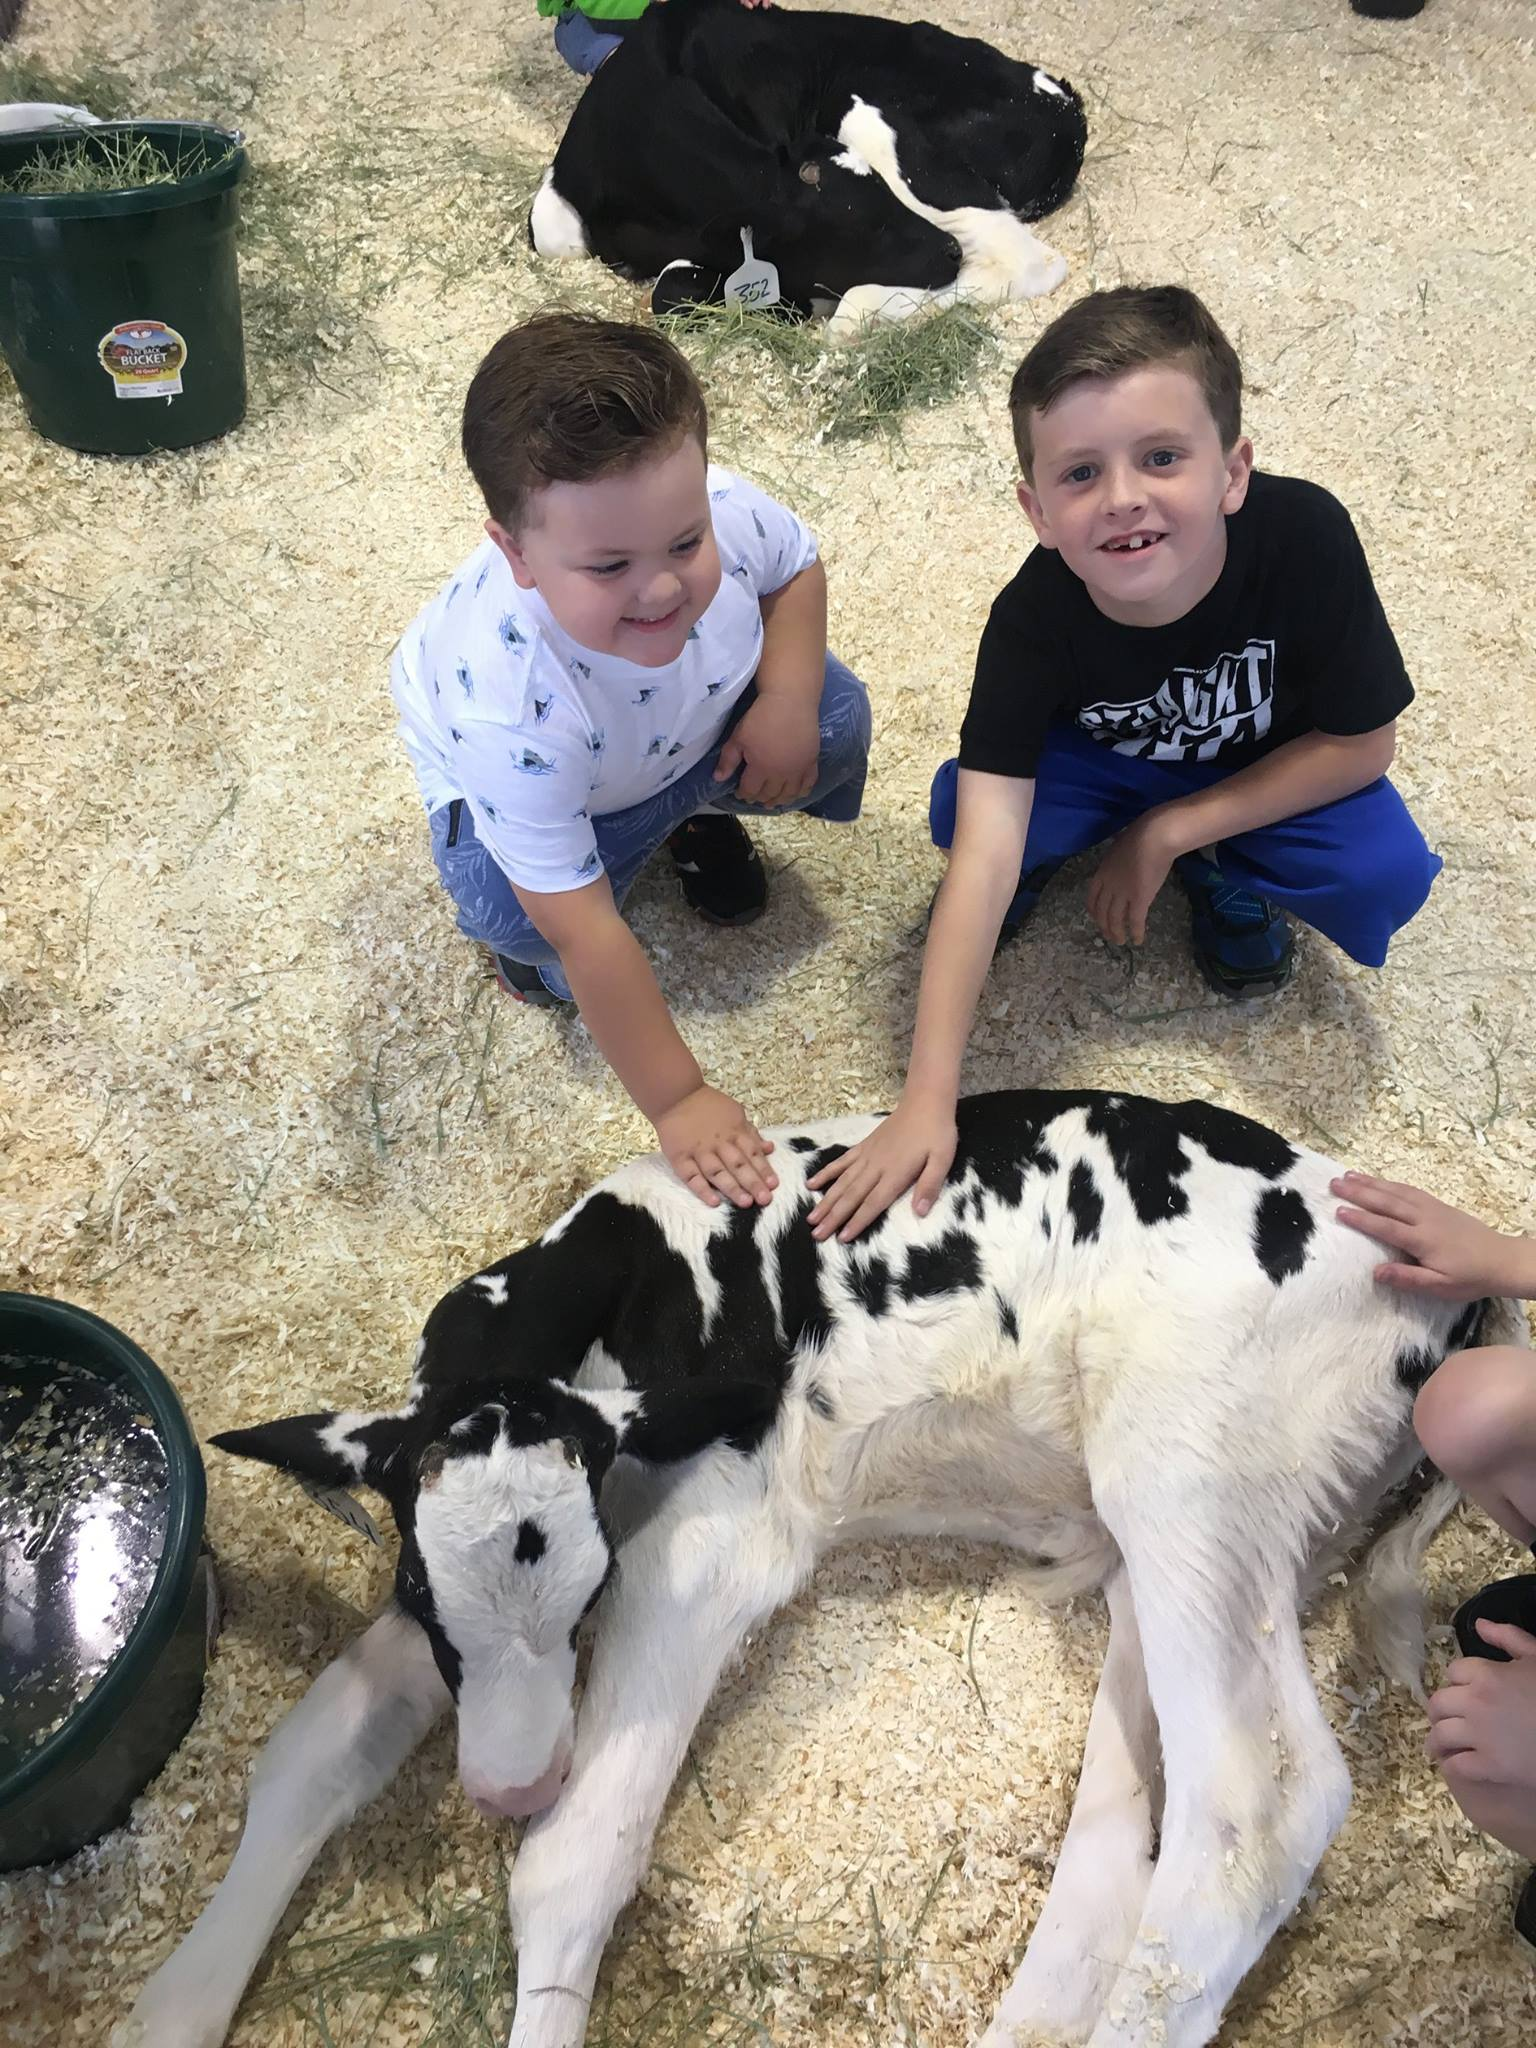 Petting Cows at the State Fair